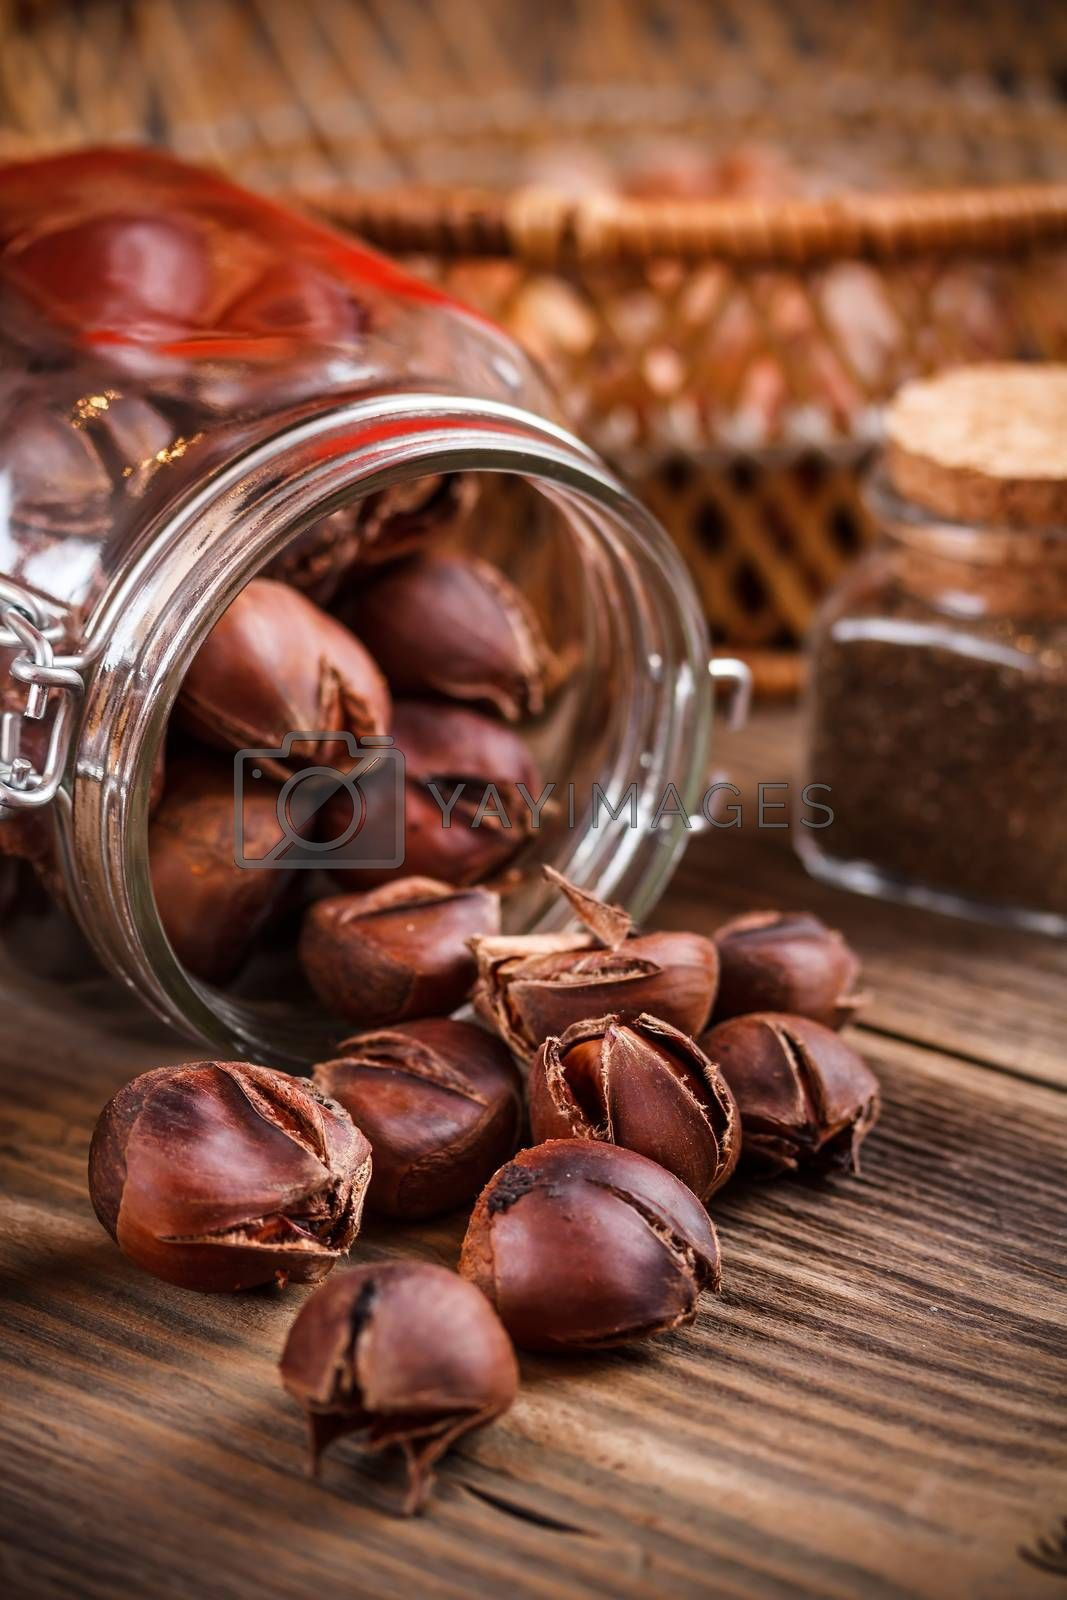 Autumn delicatesse, roasted chestnut on wooden background